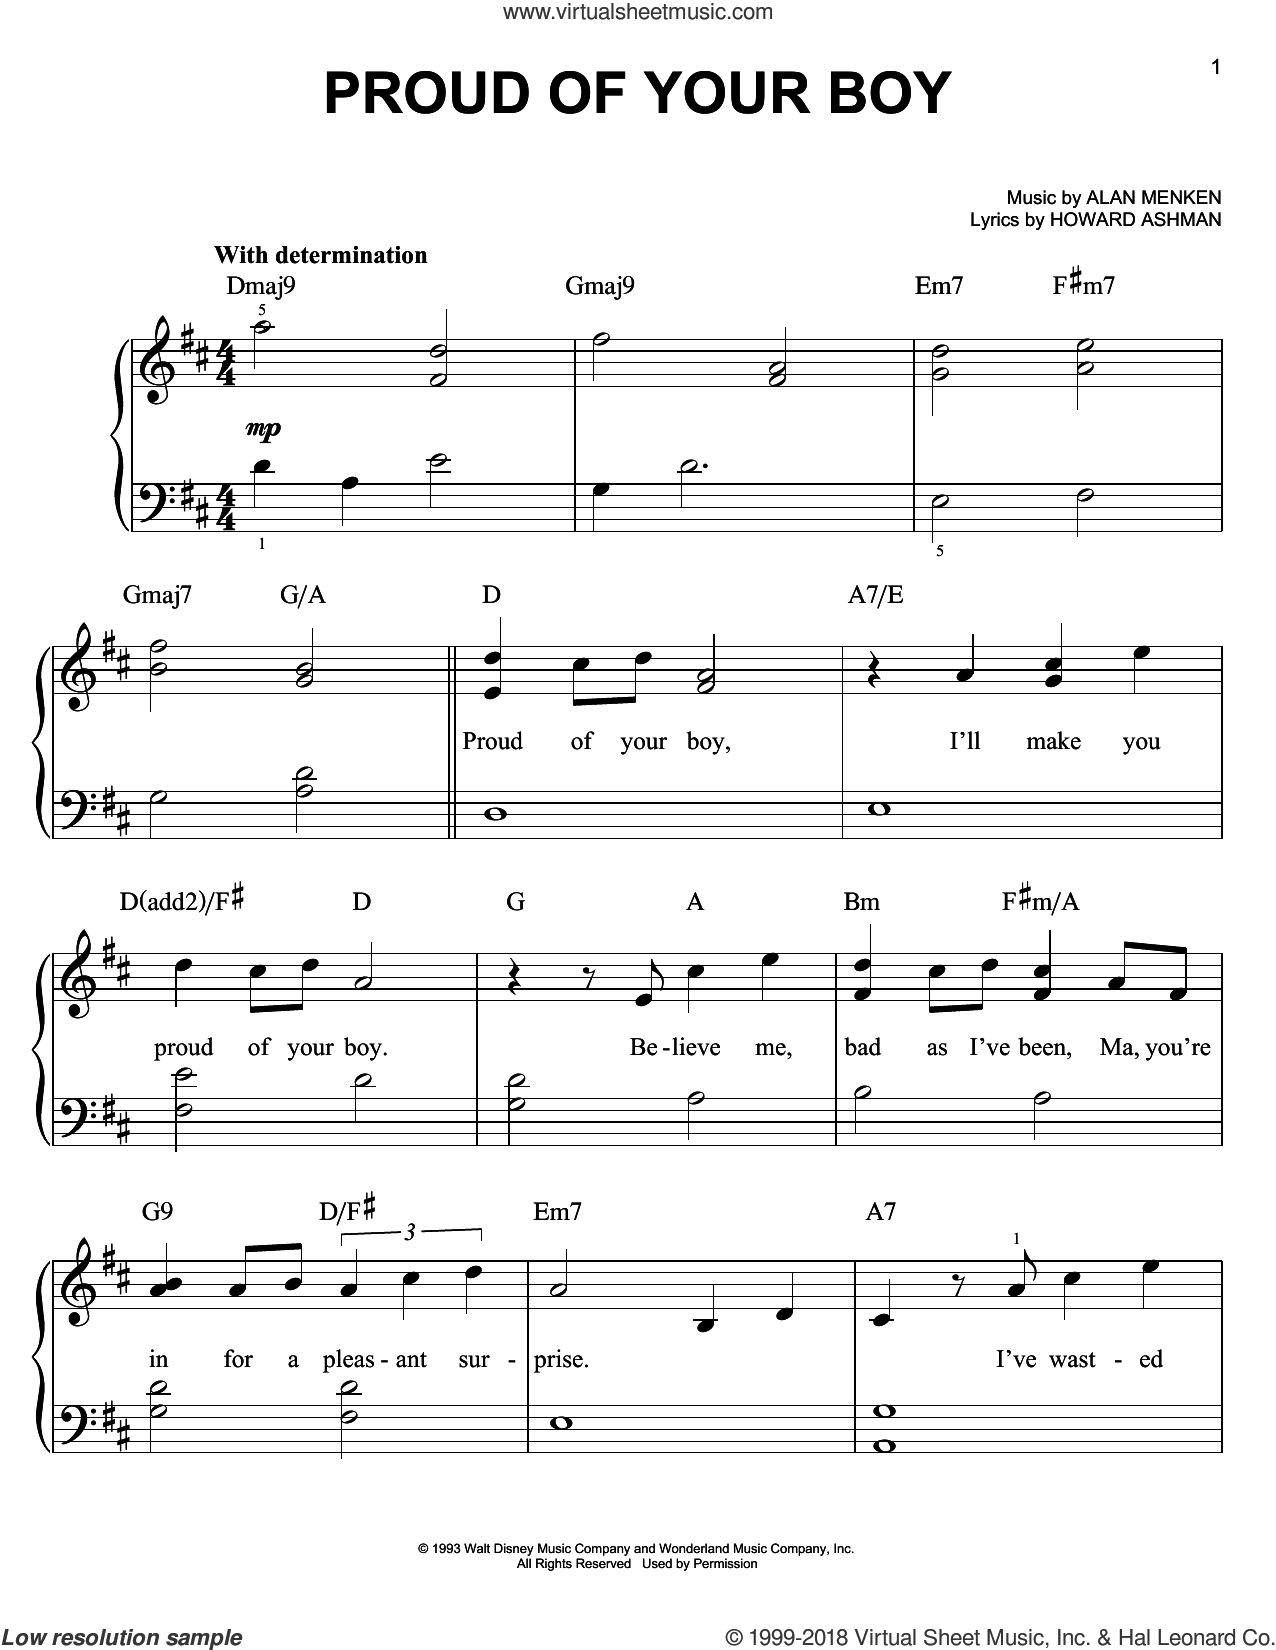 Proud Of Your Boy sheet music for piano solo by Alan Menken and Howard Ashman, easy skill level